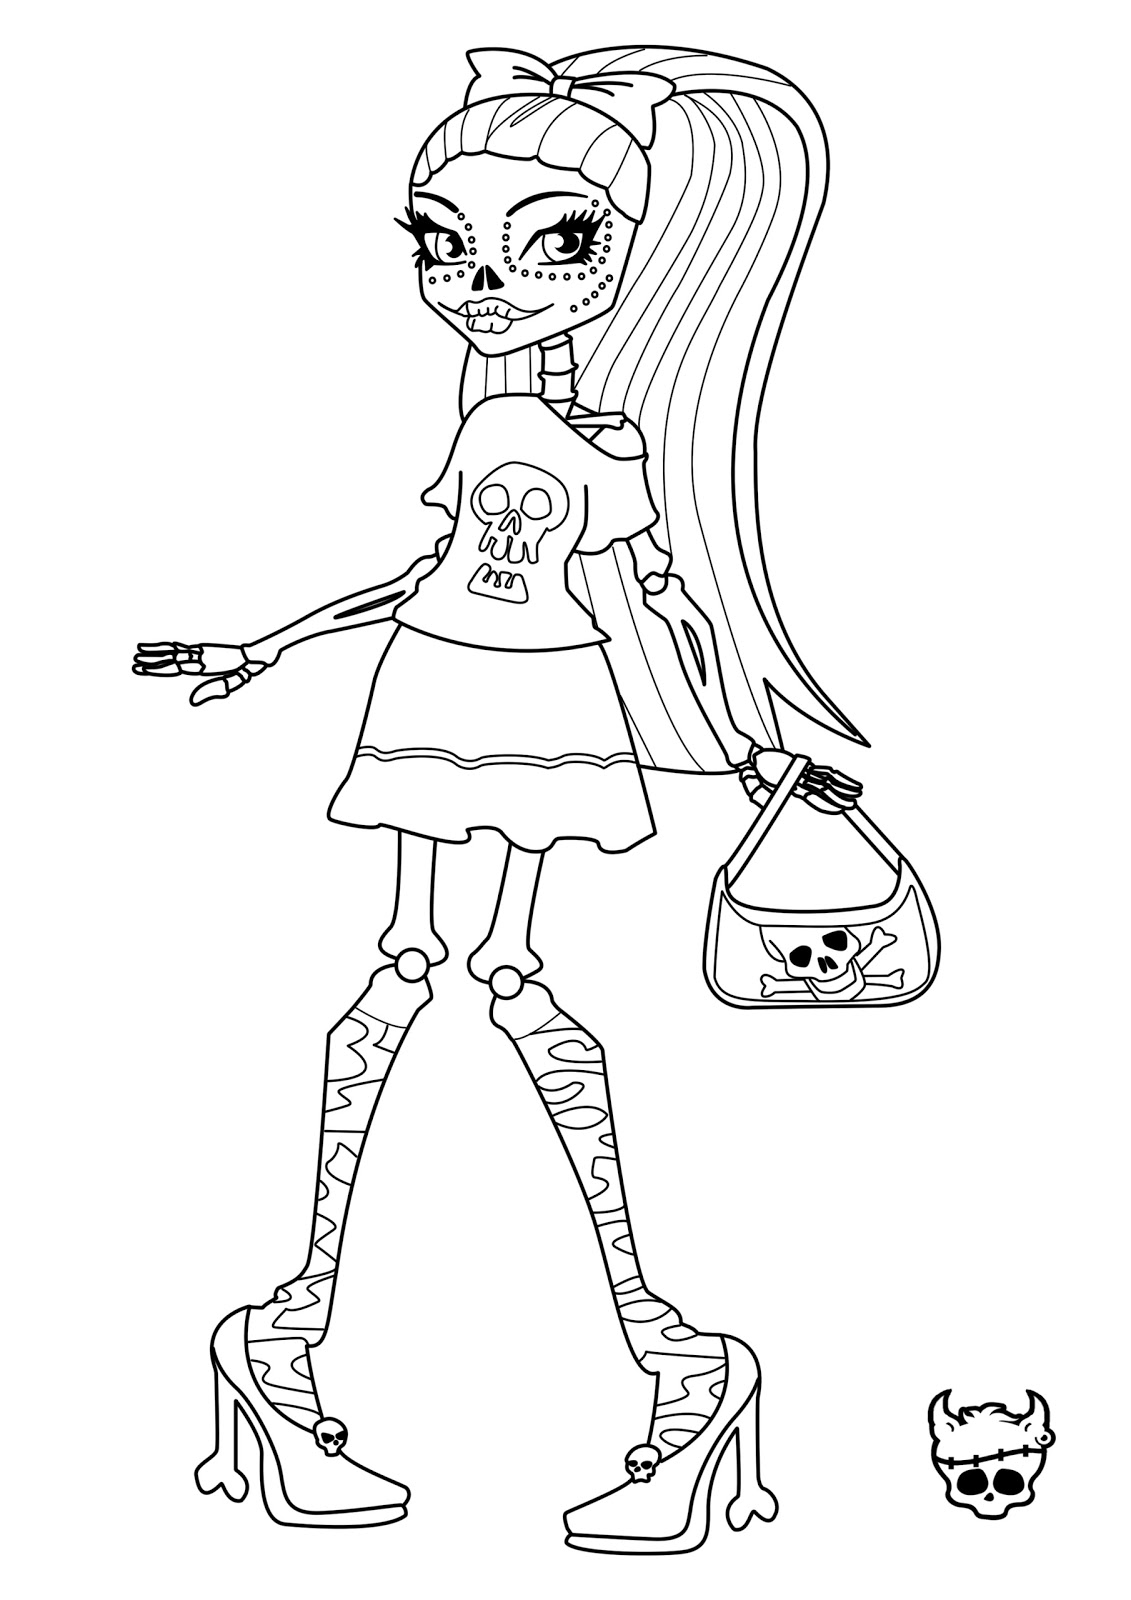 free monster high coloring pages to print monster high jinafire long coloring pages free printable free high print coloring monster pages to